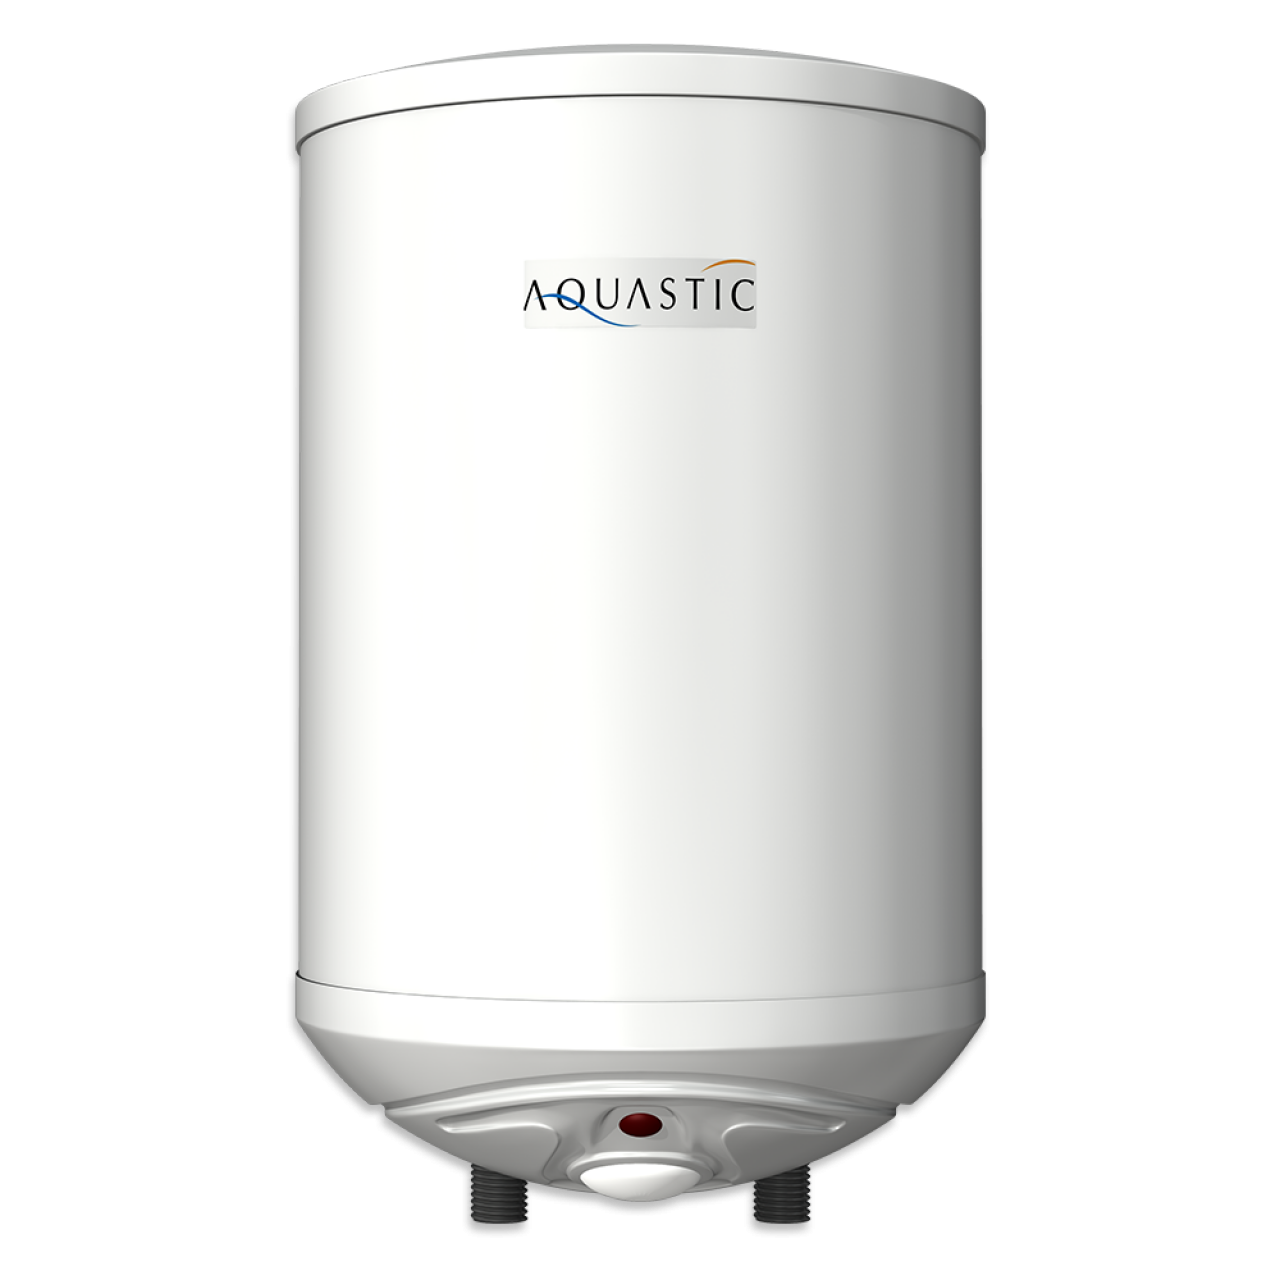 Aquastic AQ 10 F